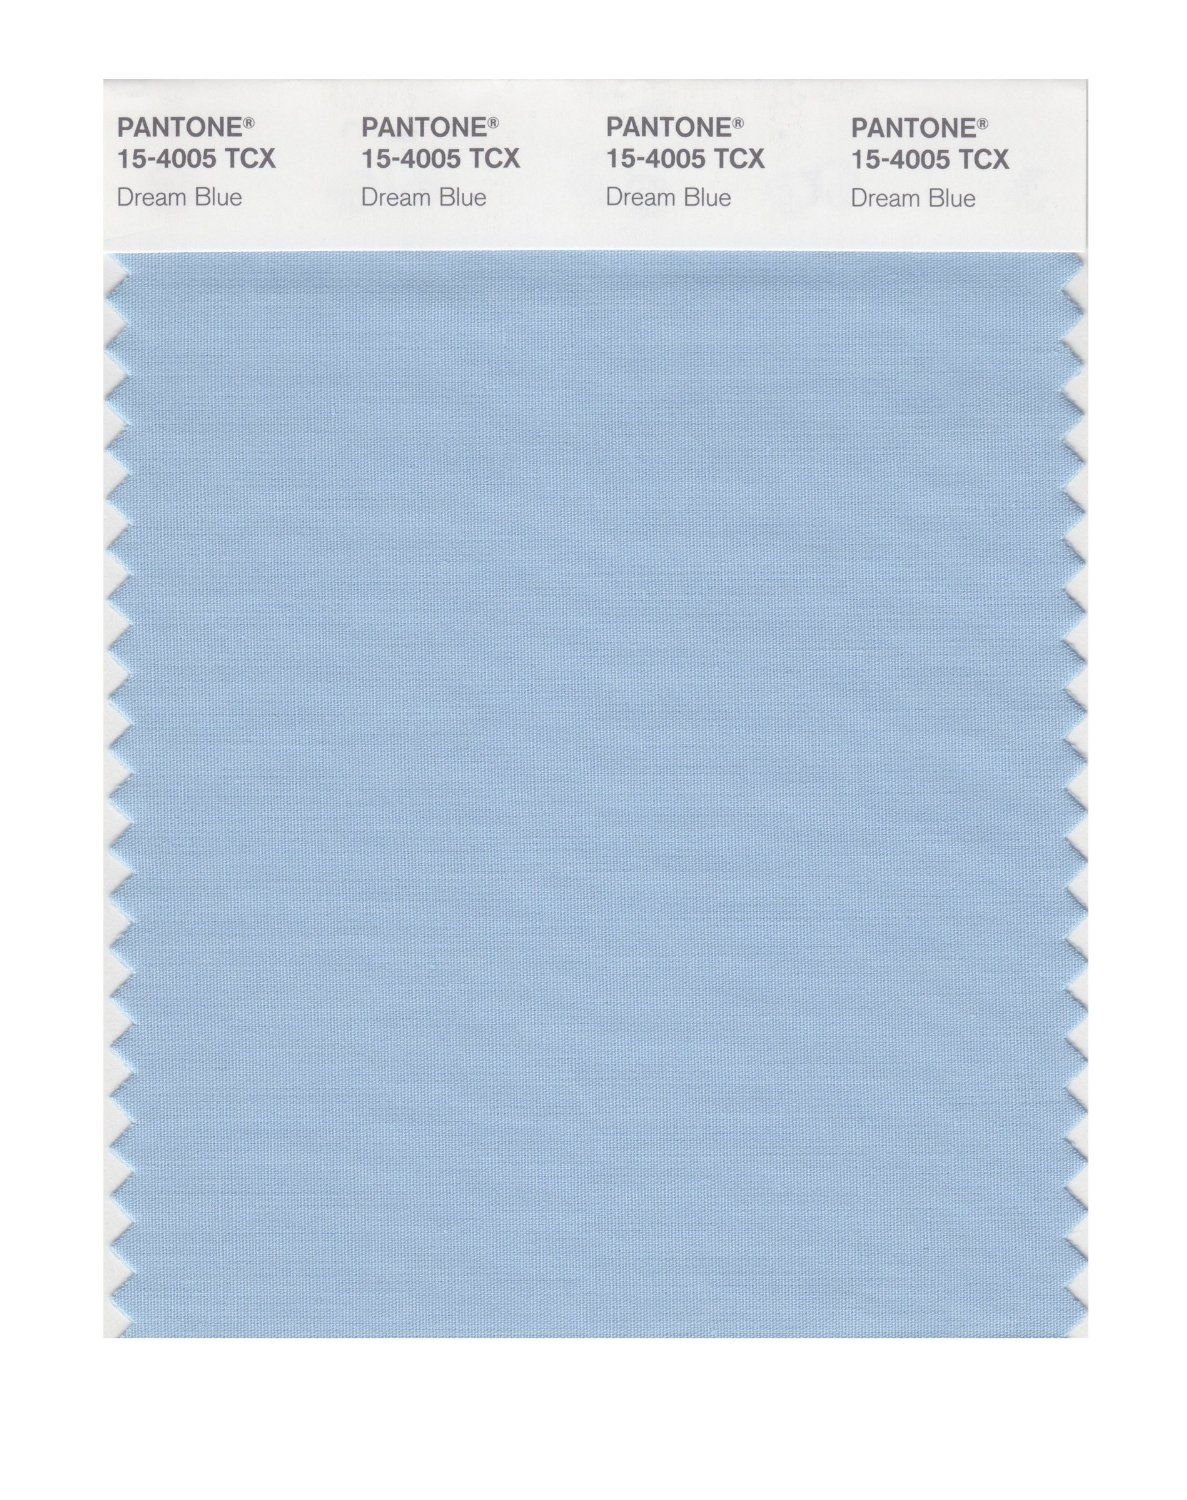 Pantone Smart Swatch 15-4005 Dream Blue